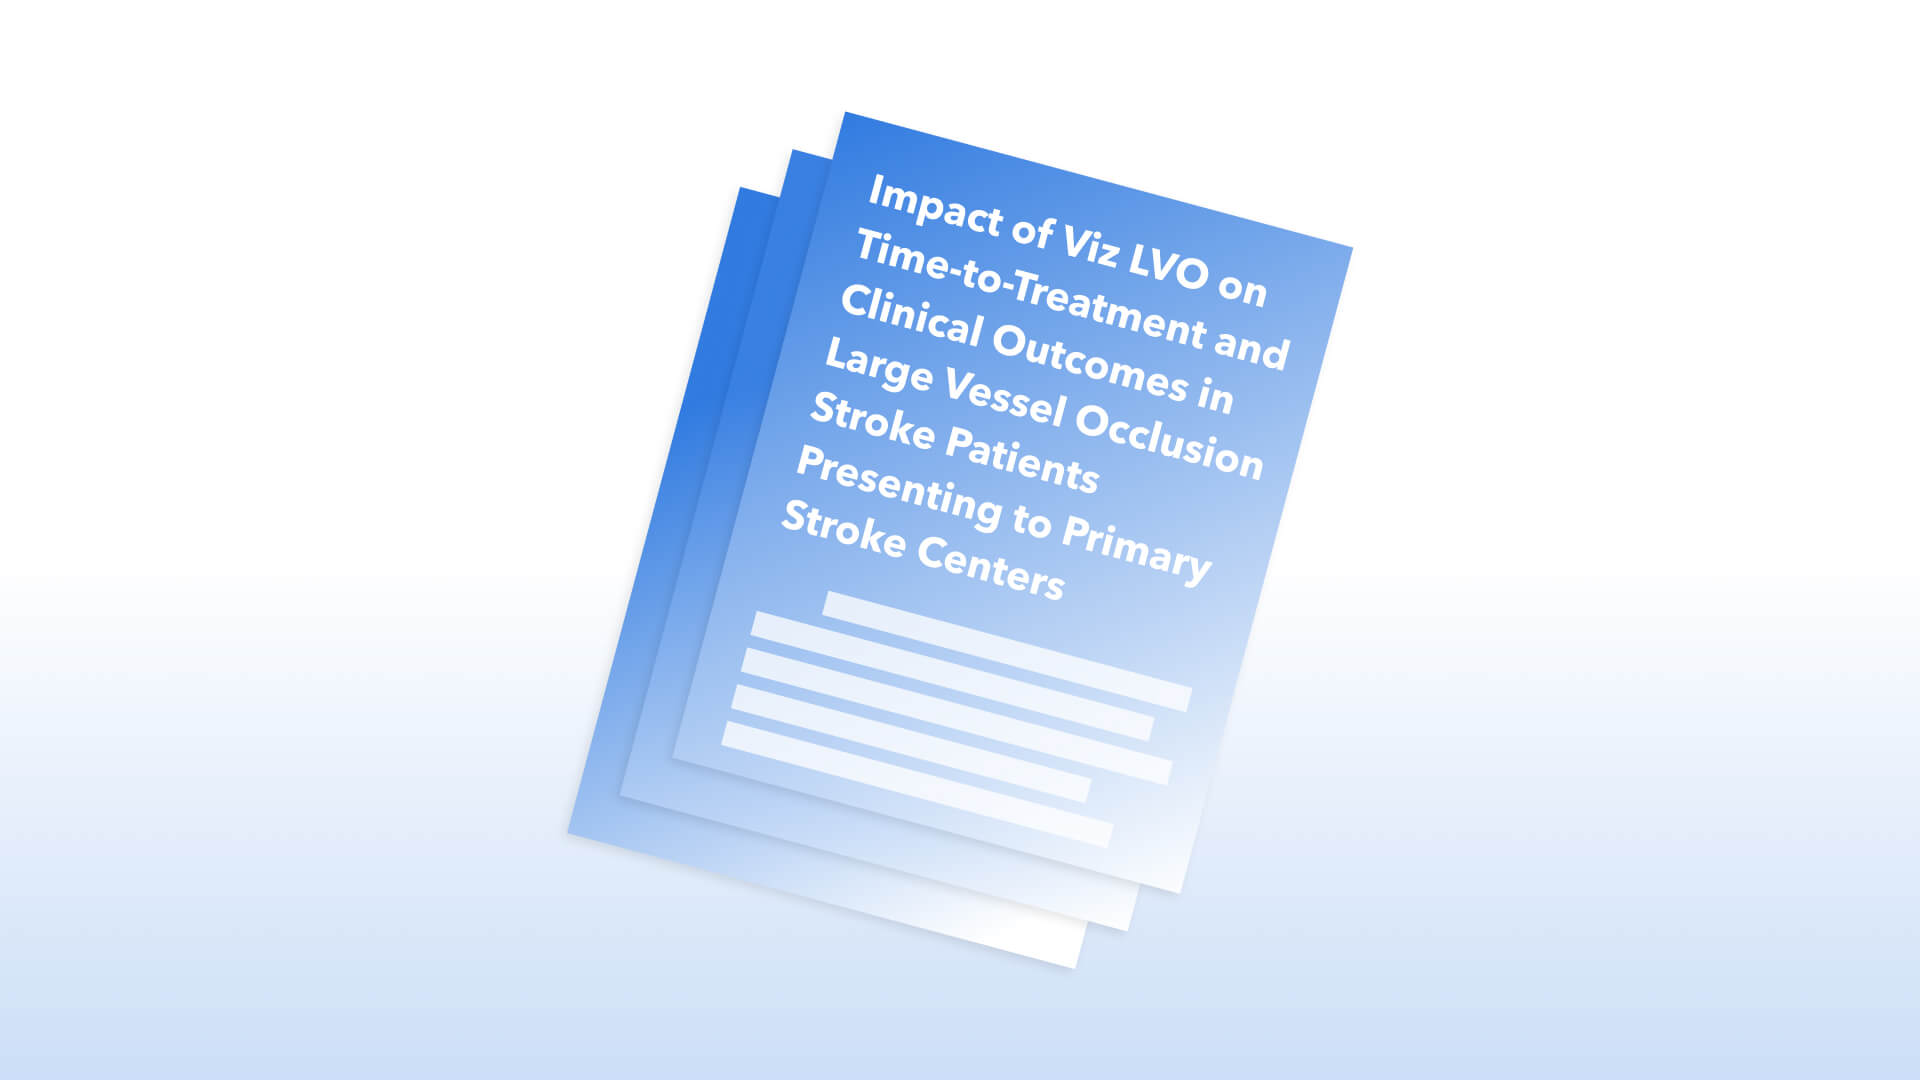 Viz LVO on Time-to-Treatment and Clinical Outcomes in LVO Stroke Patients